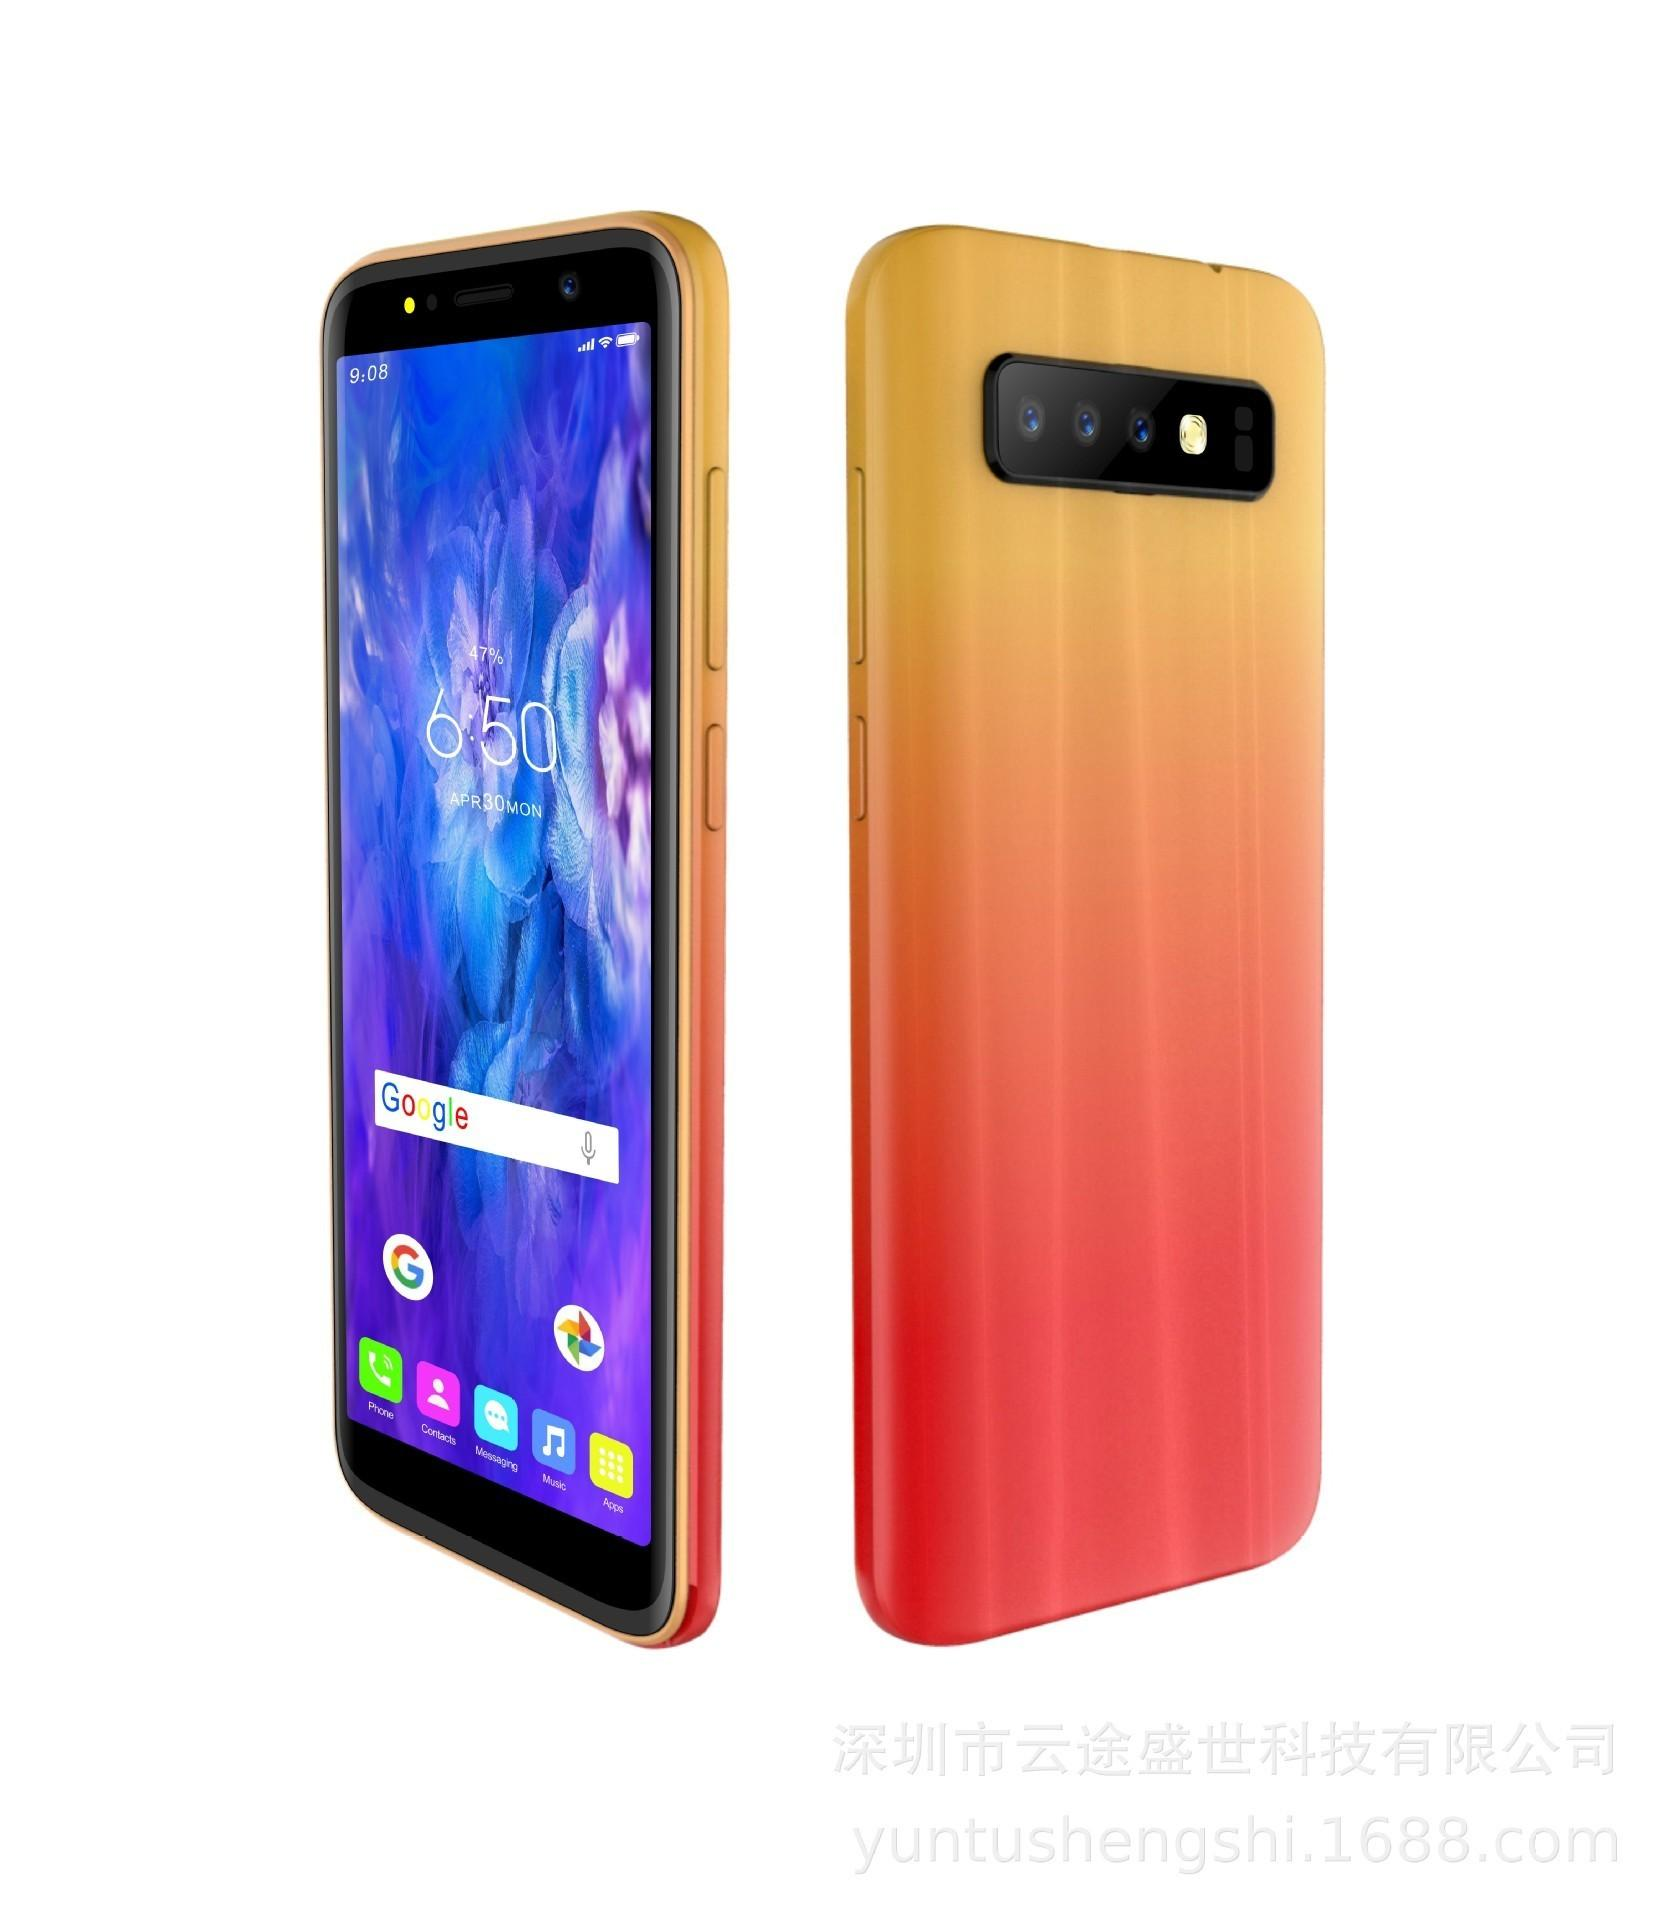 2019 New Pattern S10 Gradual Change 5.5 Inch 18: 9 Ips Screen 200w Camera Wcdma3g Low Price Mobile Phone